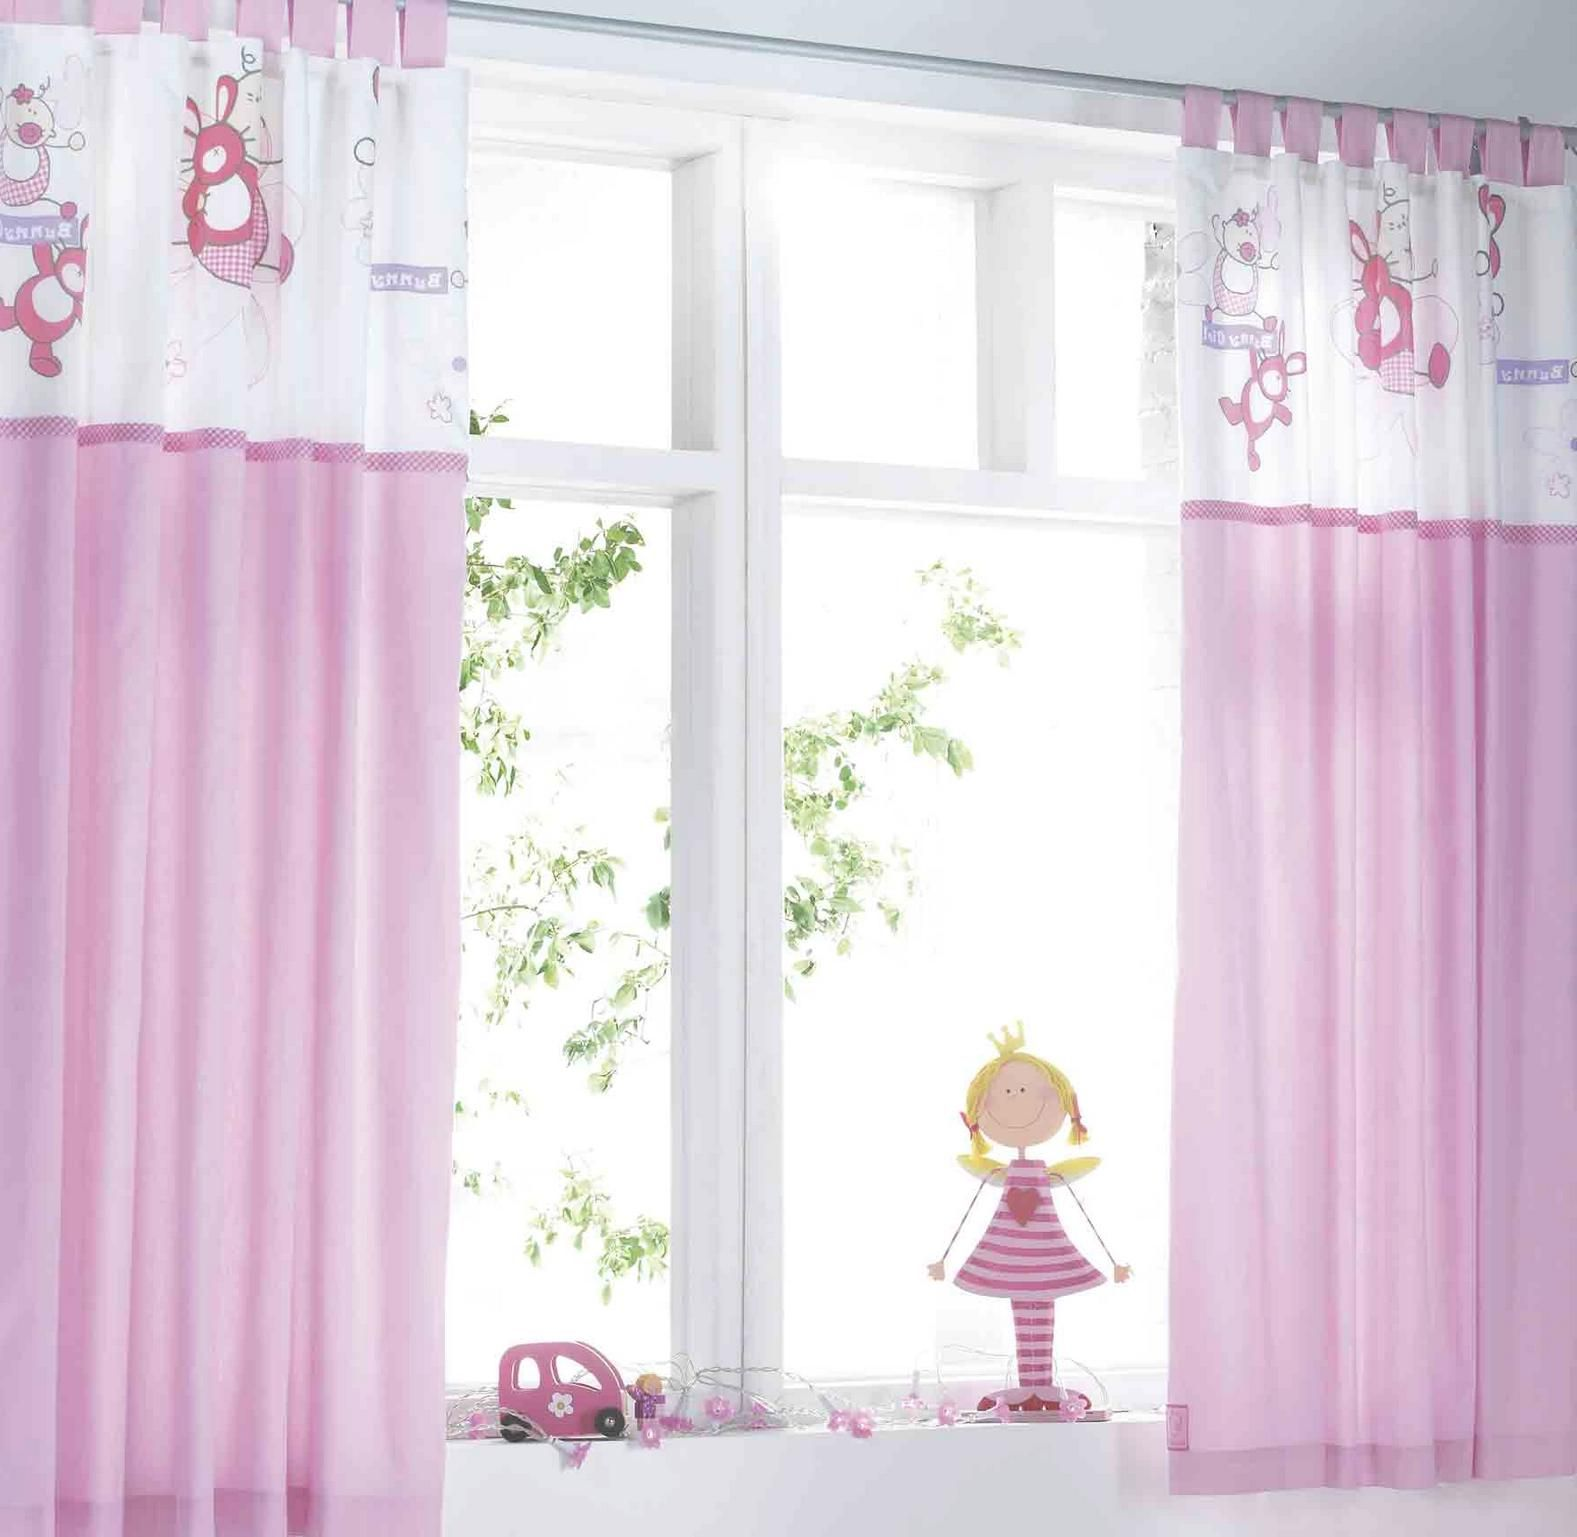 Pink Curtains For Bedroom Kids Room Bee Motive Kids Room Curtains For Girl With White And